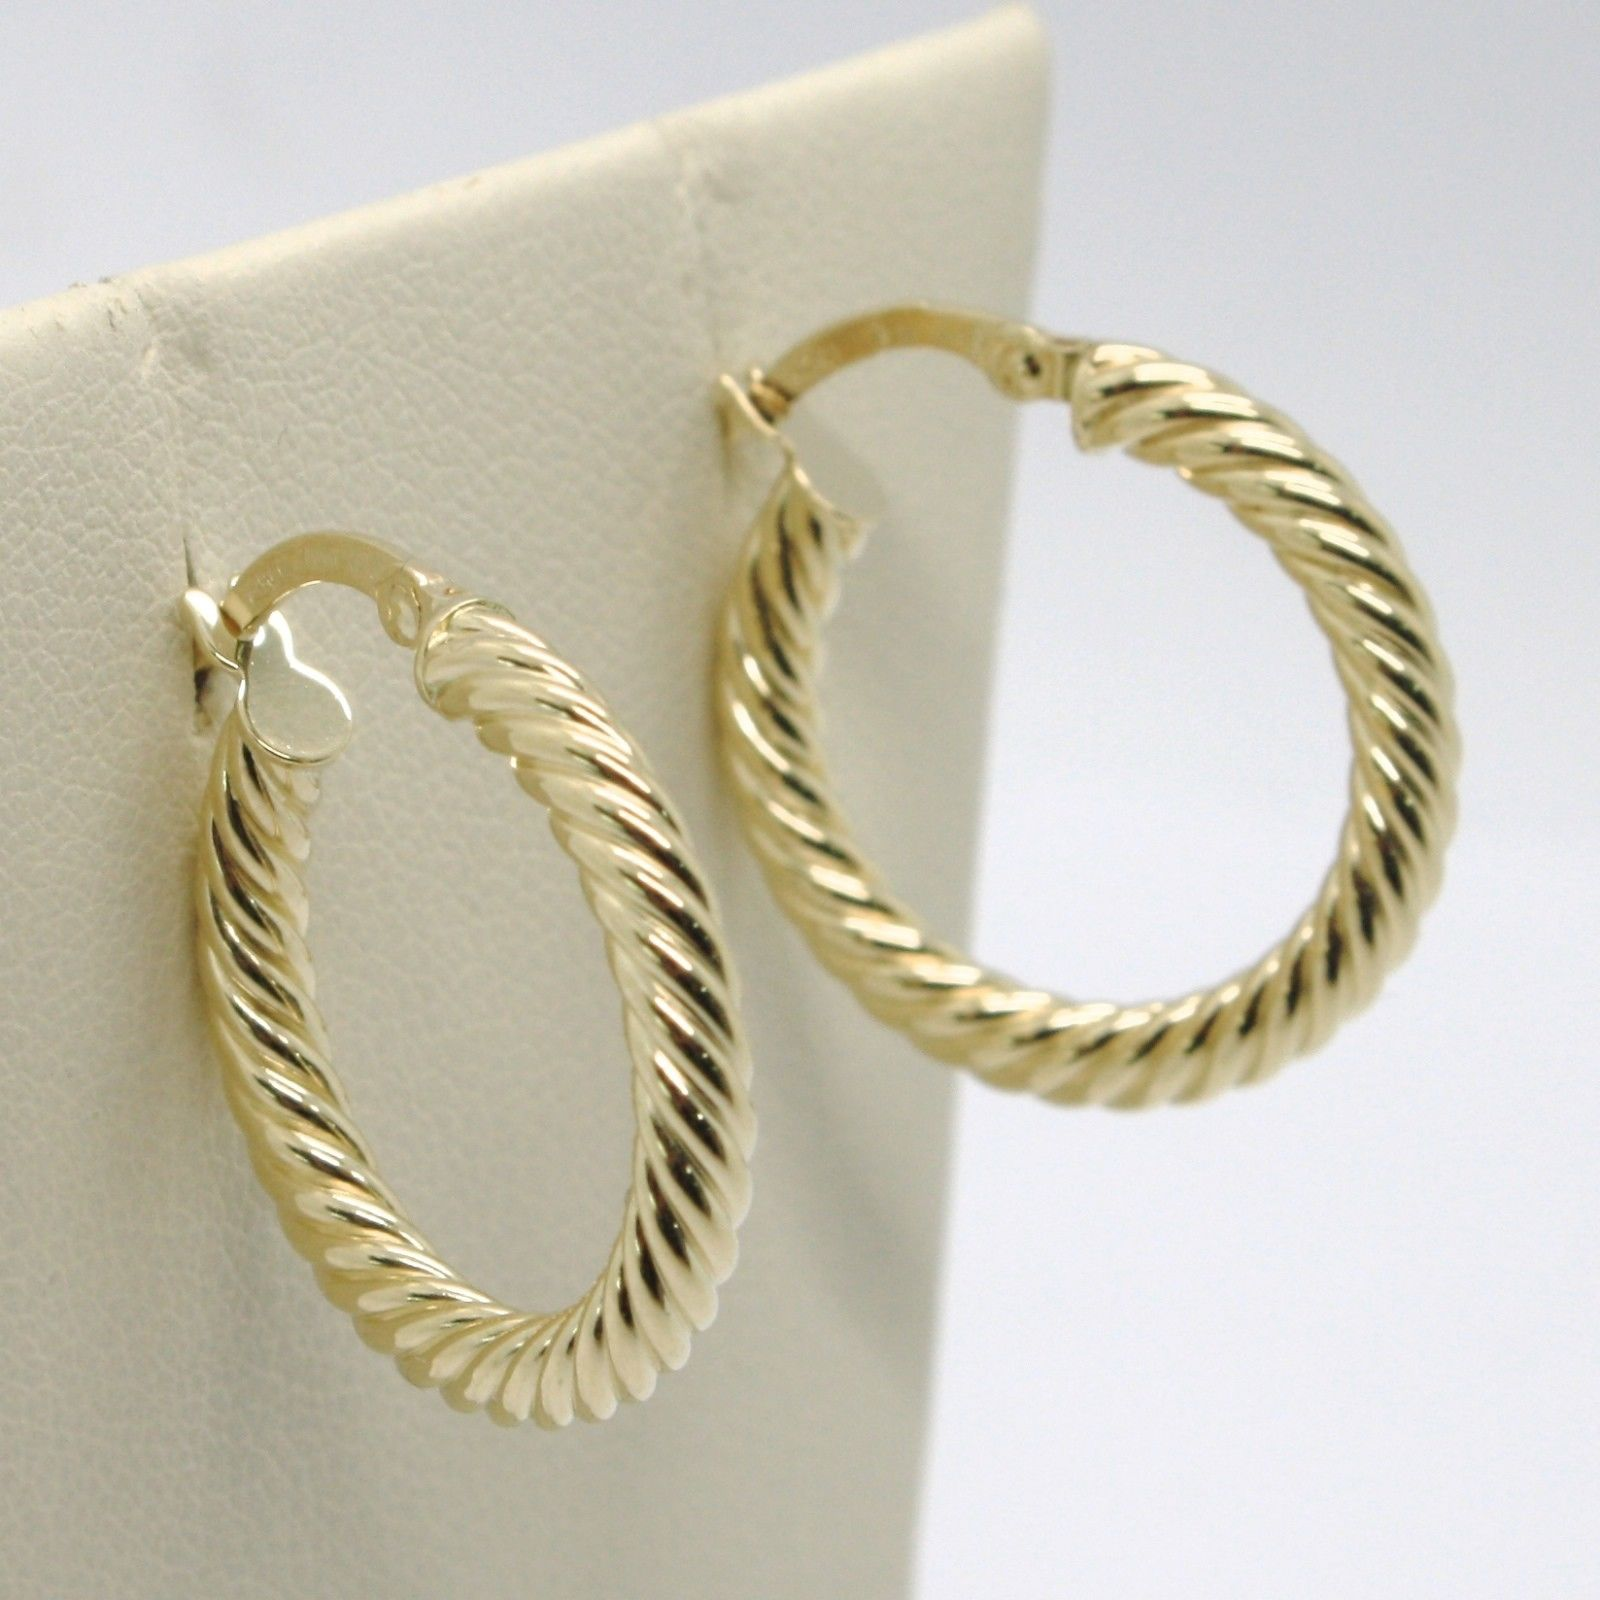 18K YELLOW GOLD CIRCLE HOOPS TUBE TWISTED STRIPED EARRINGS 23 MM x 3 MM, ITALY